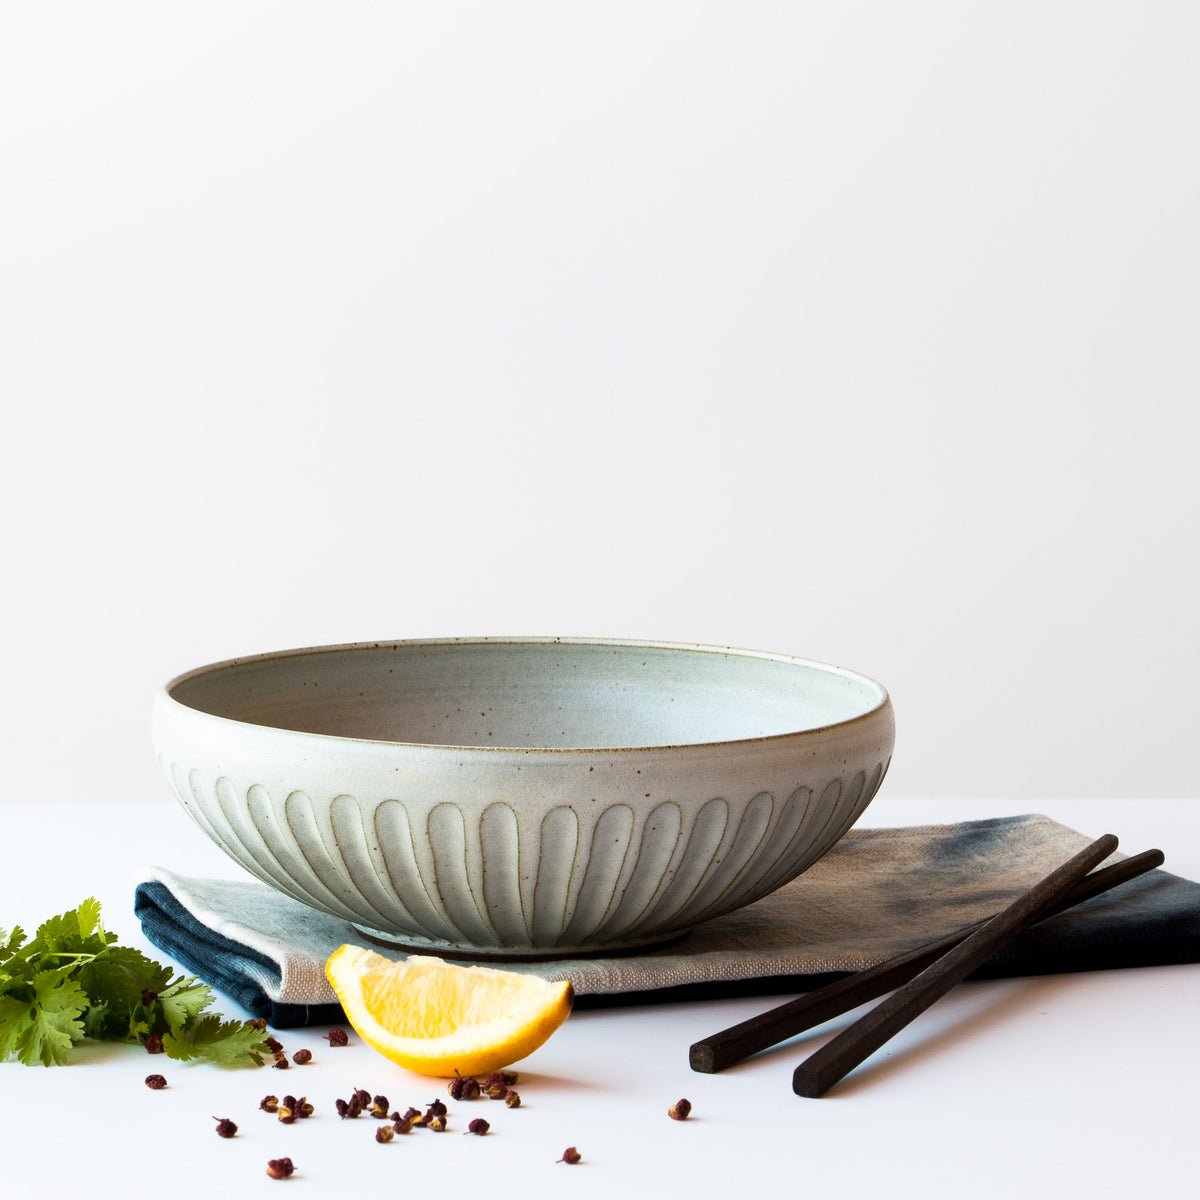 Lookbook - Handmade Contemporary Ceramic Bowl - Hand Thrown in Canada - Chic & Basta